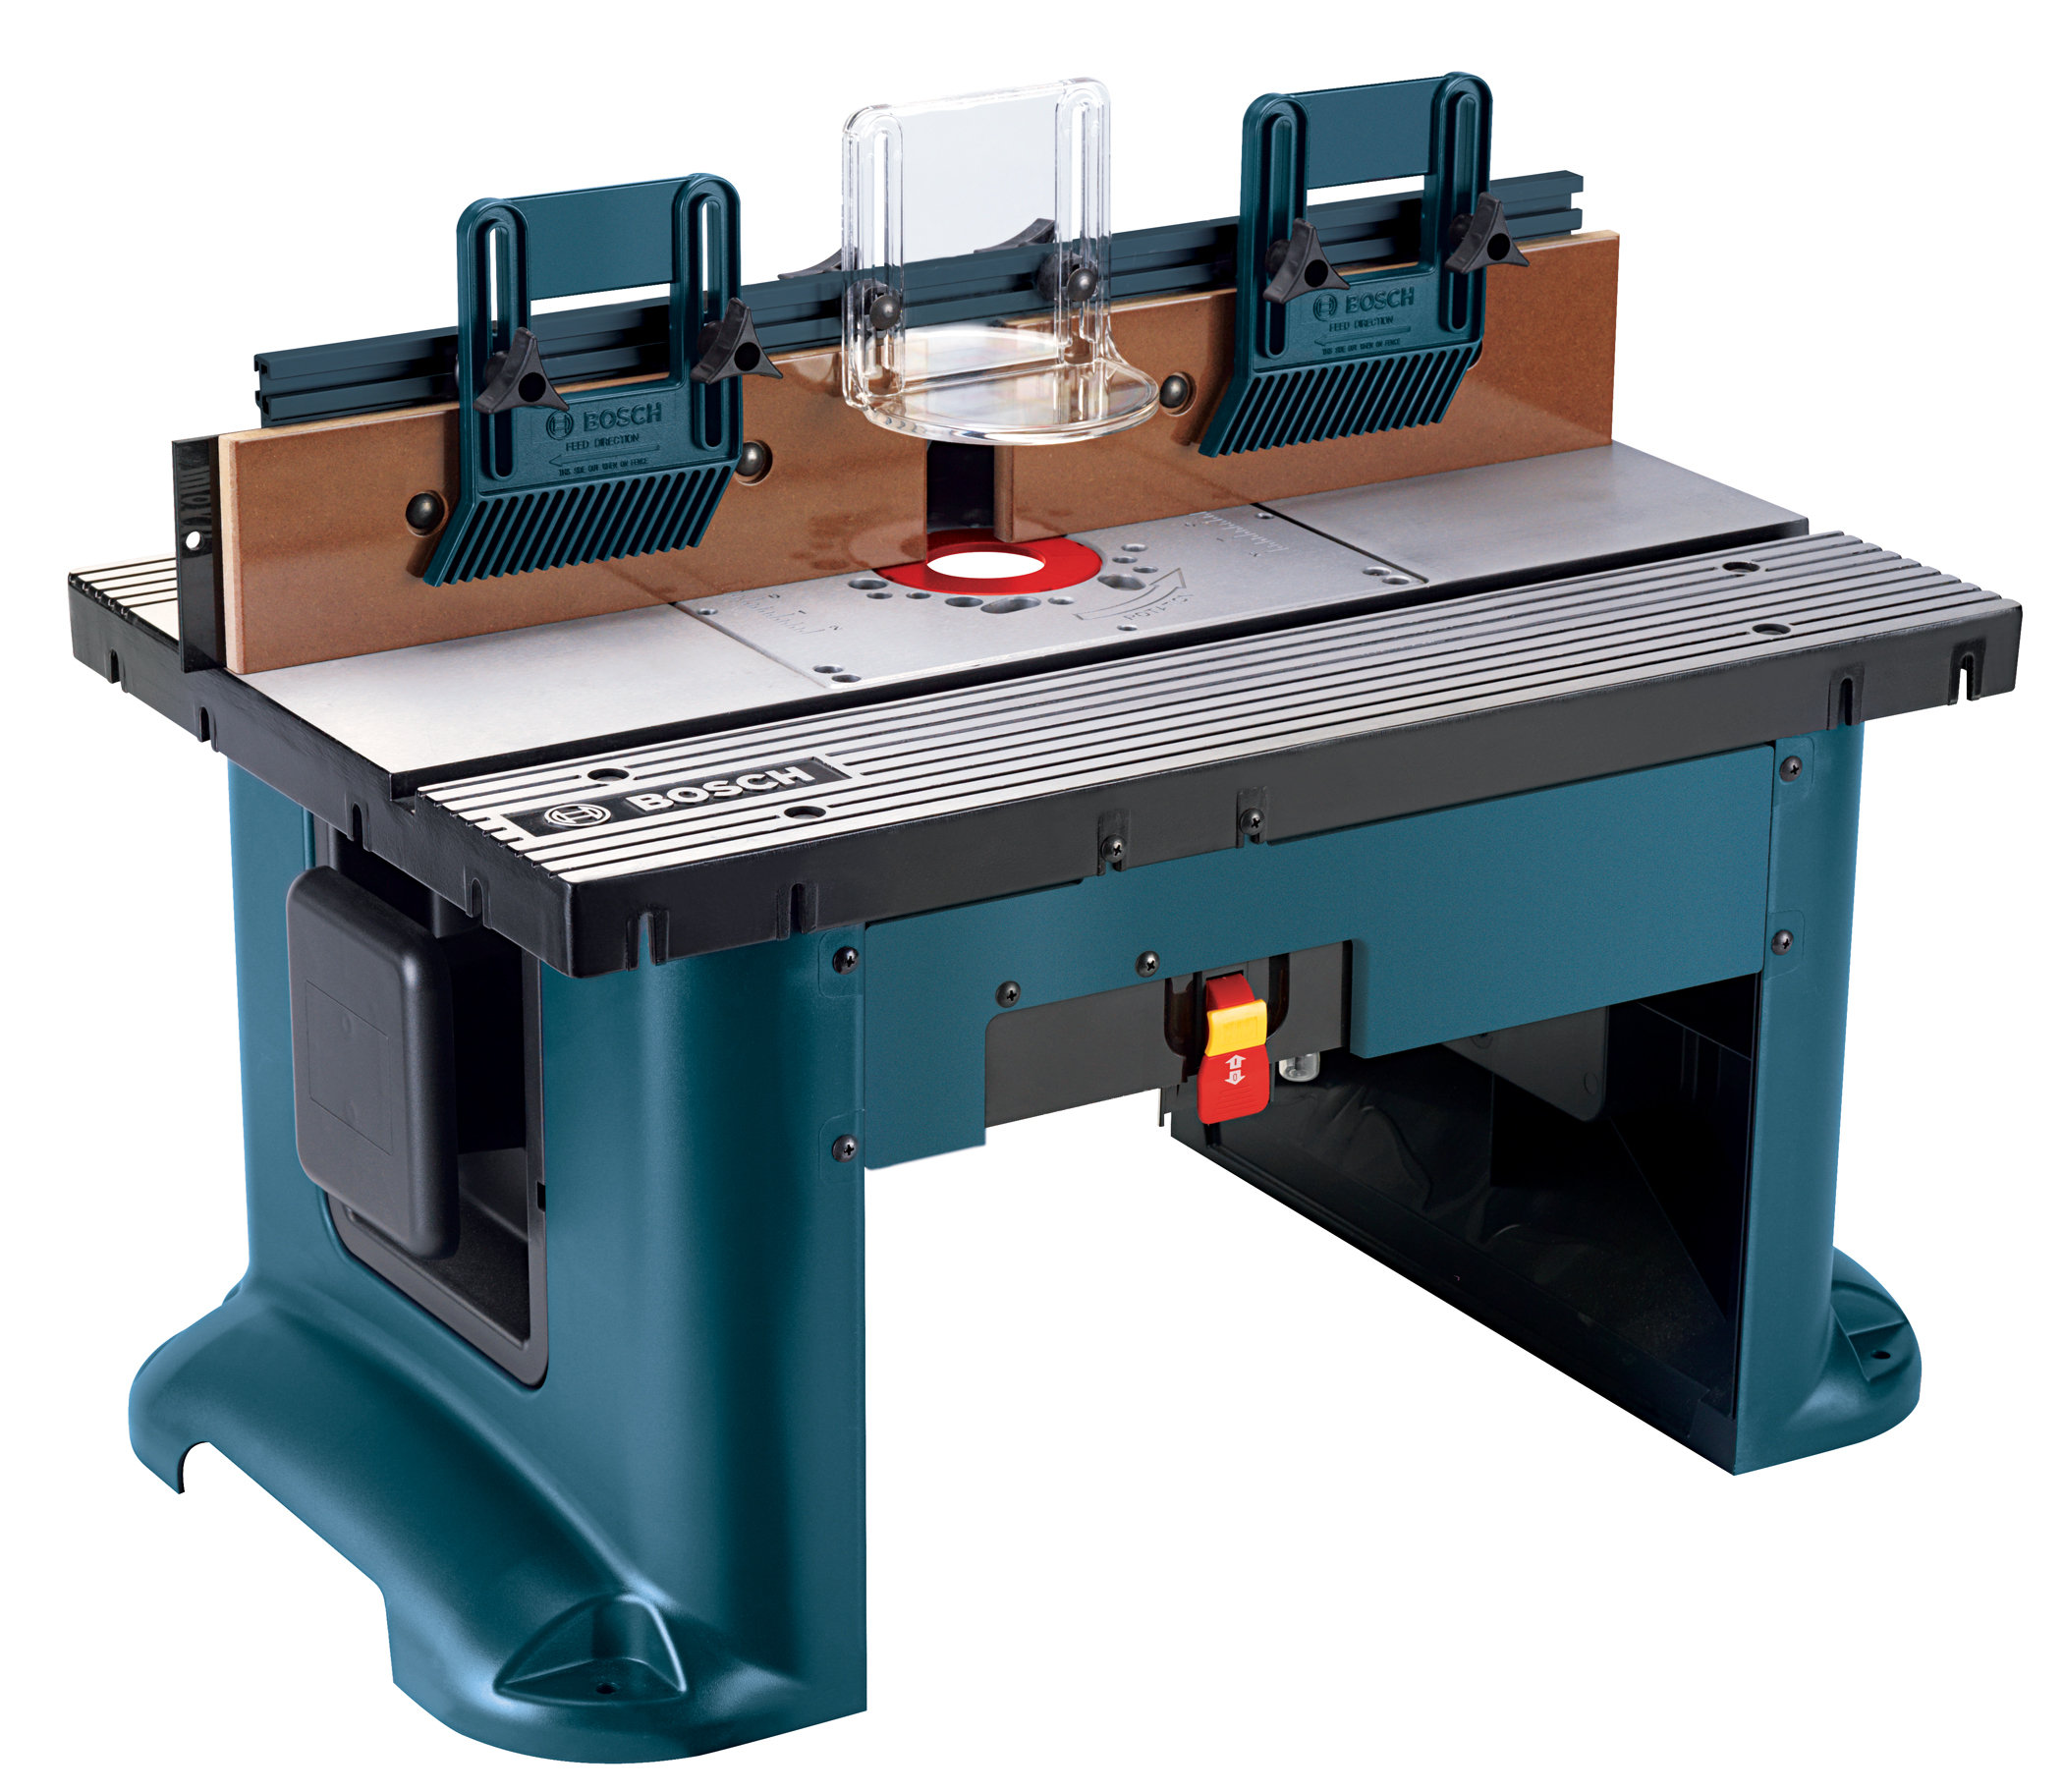 Benchtop Router Table Plans - Ra1181 benchtop router